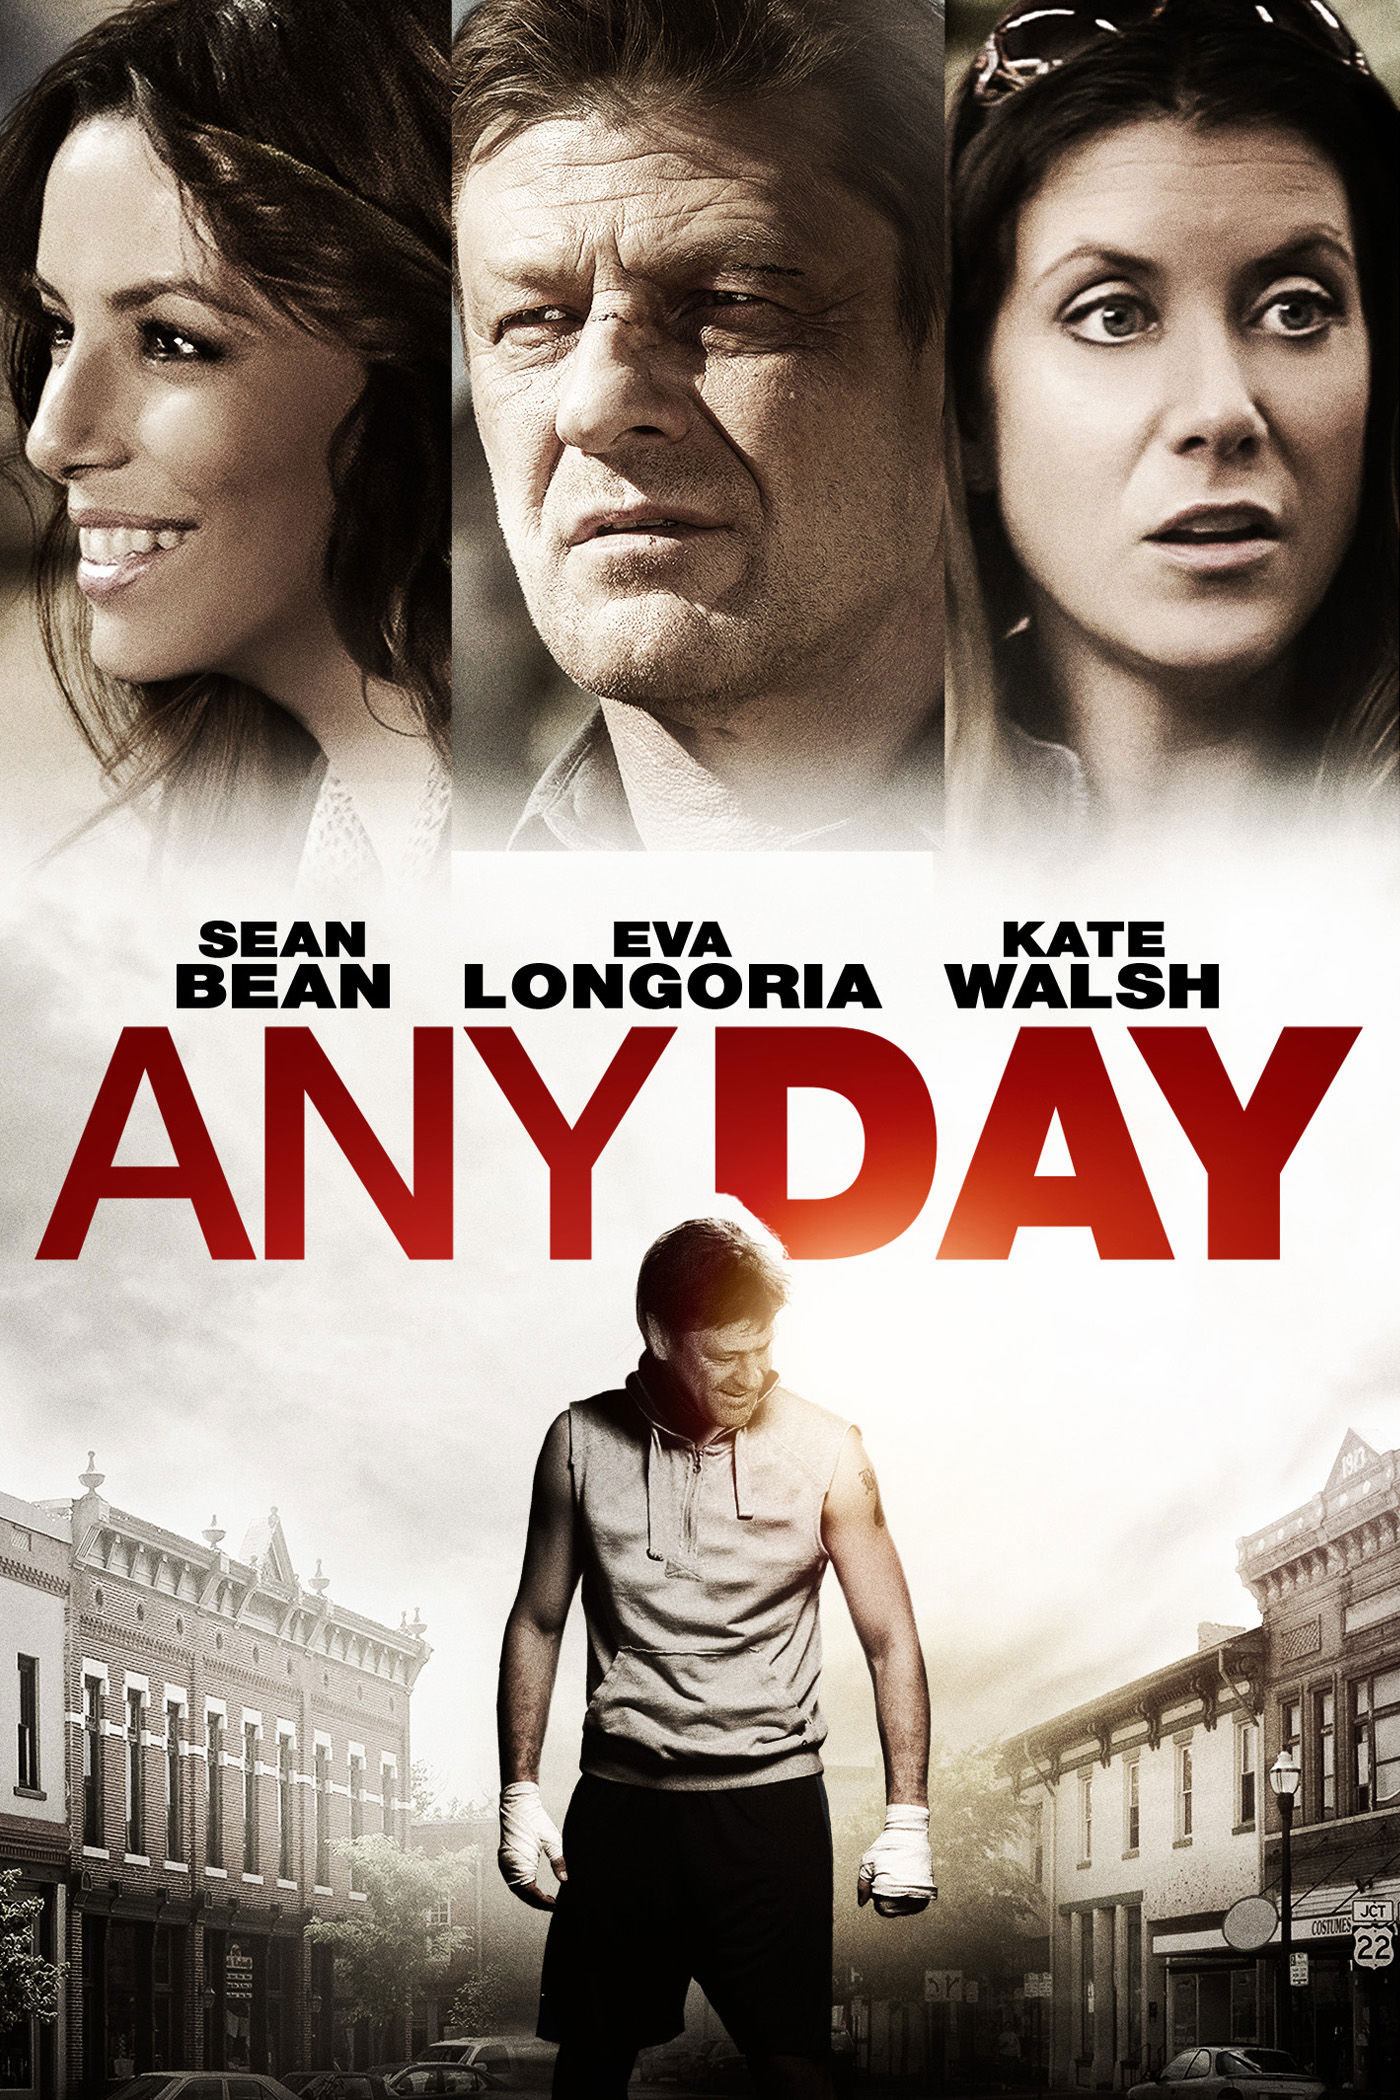 Any Day DVD Review